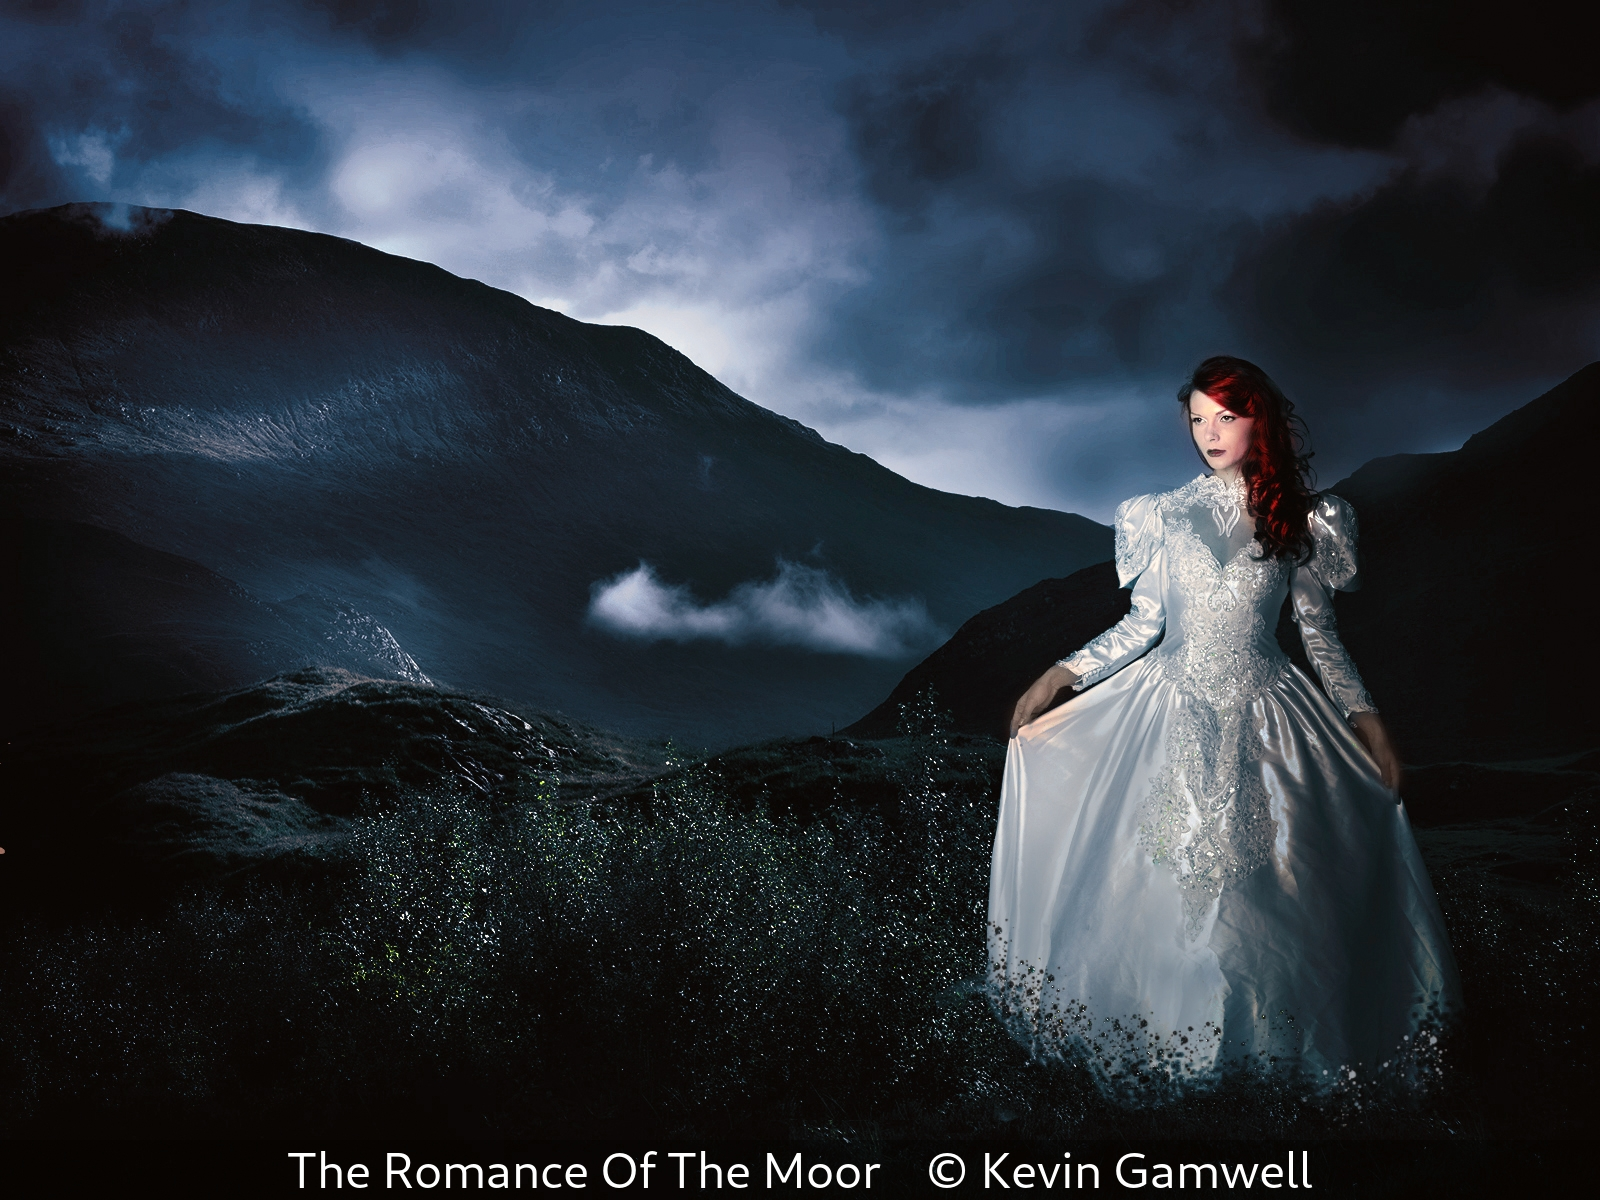 The Romance Of The Moor